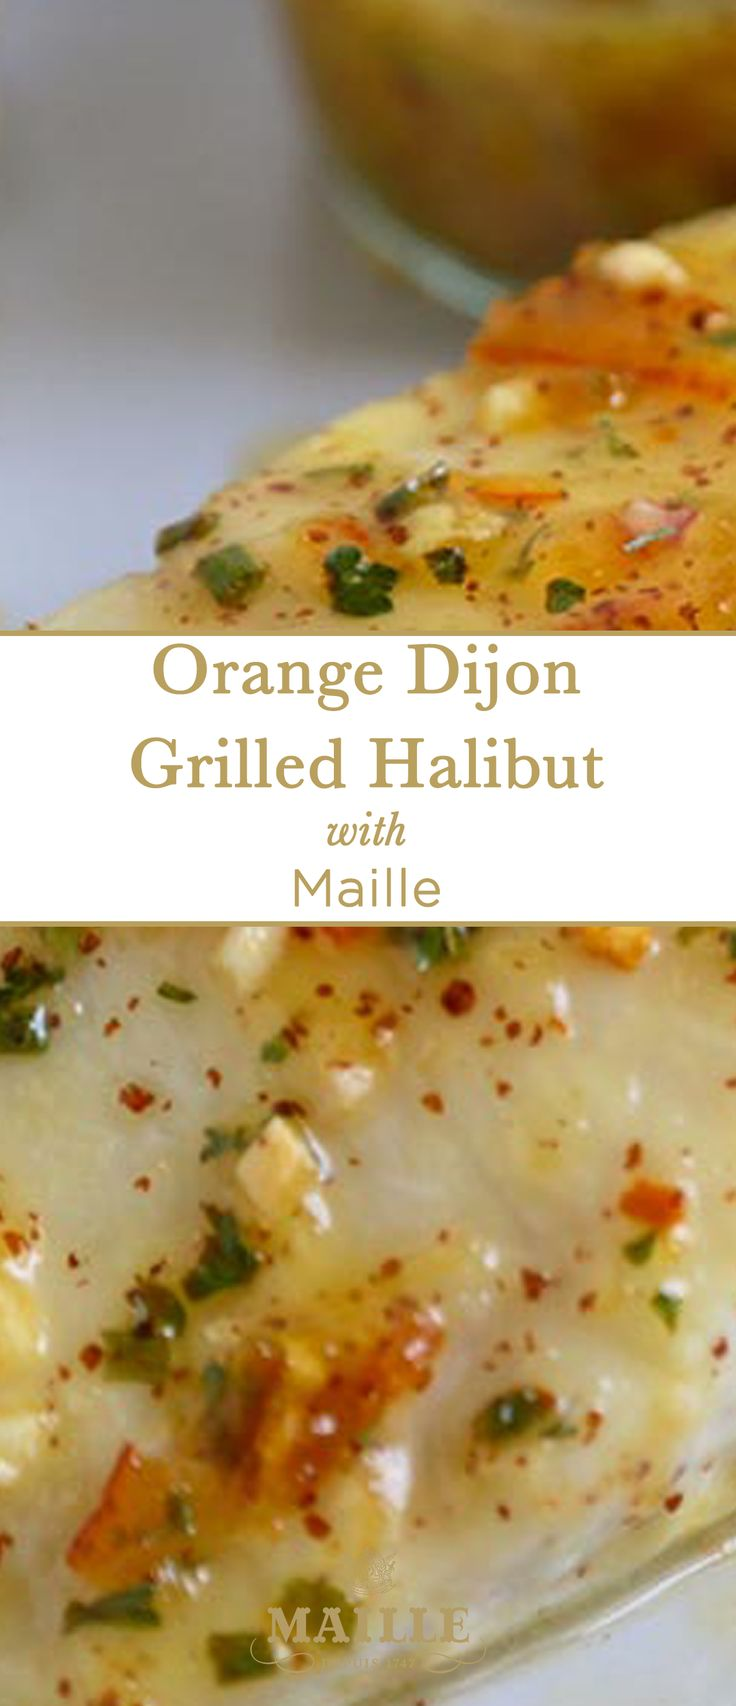 Orange Dijon Grilled Halibut. This grilled fish recipe features Maille® Dijonnaise.